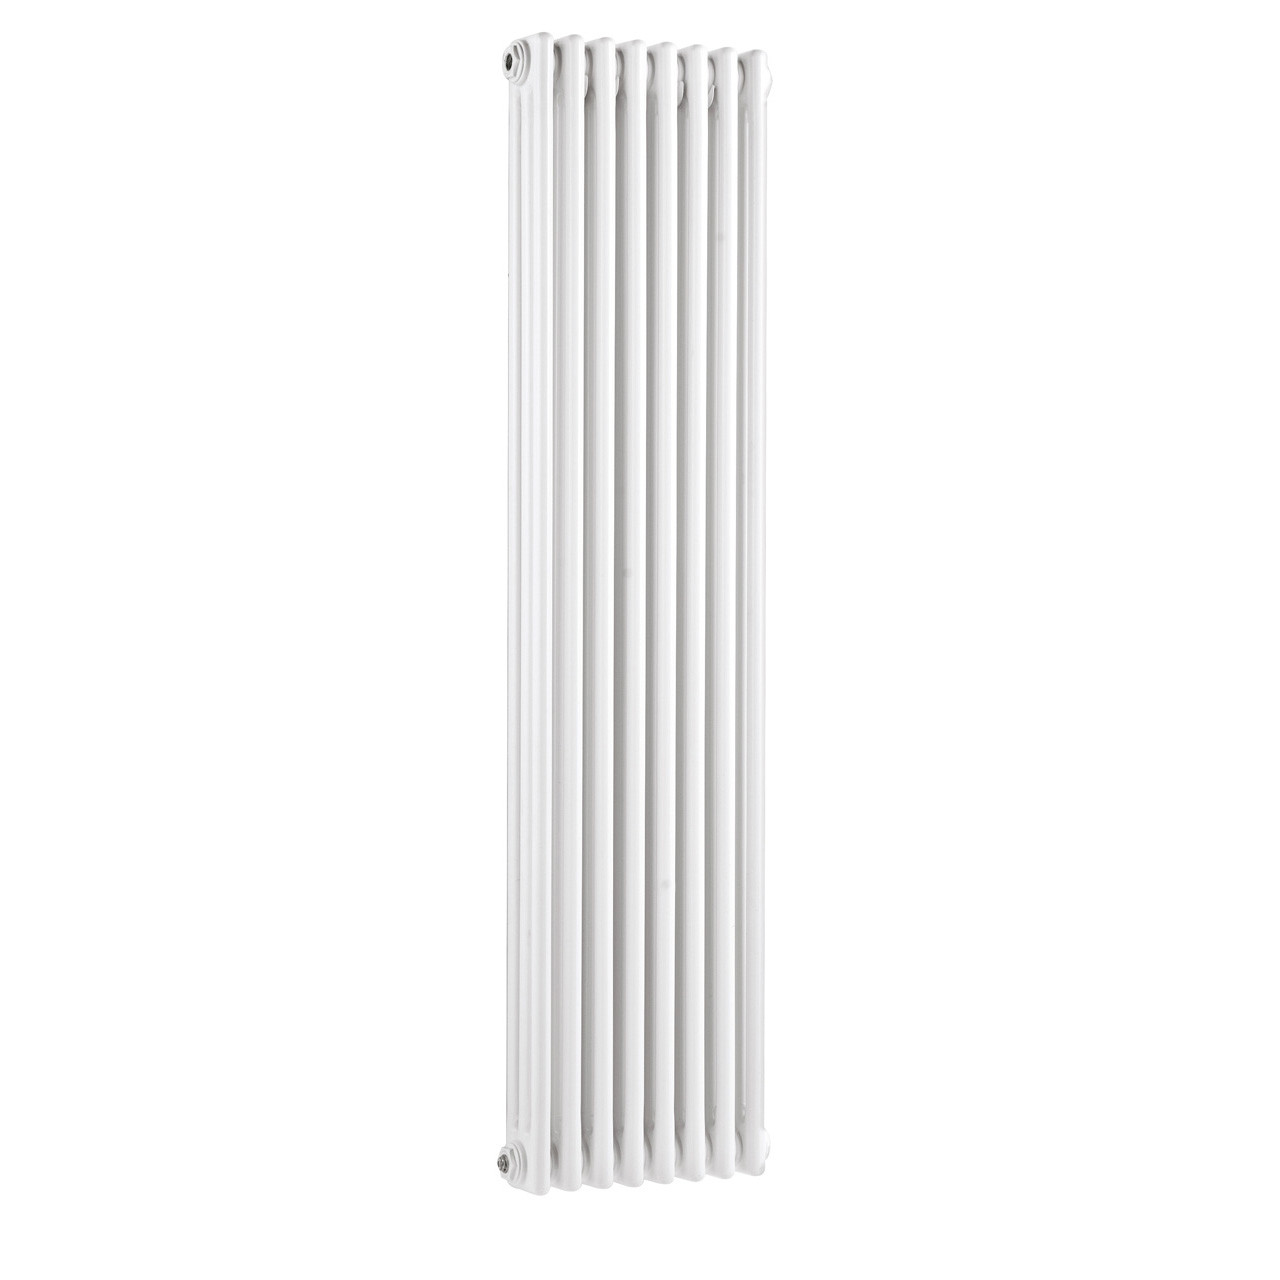 Ultra Colosseum Triple Radiator 1500mm x 381mm - HX309